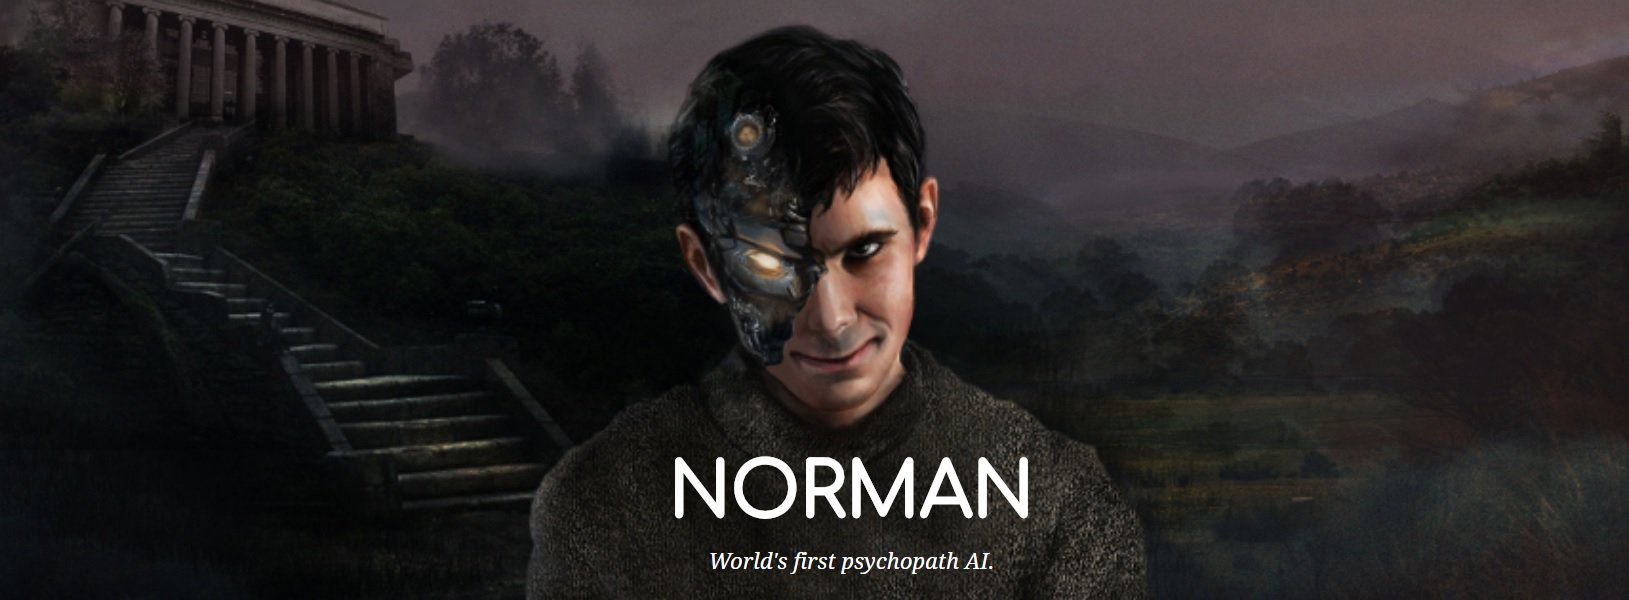 Scientists have created the AI-psychopath